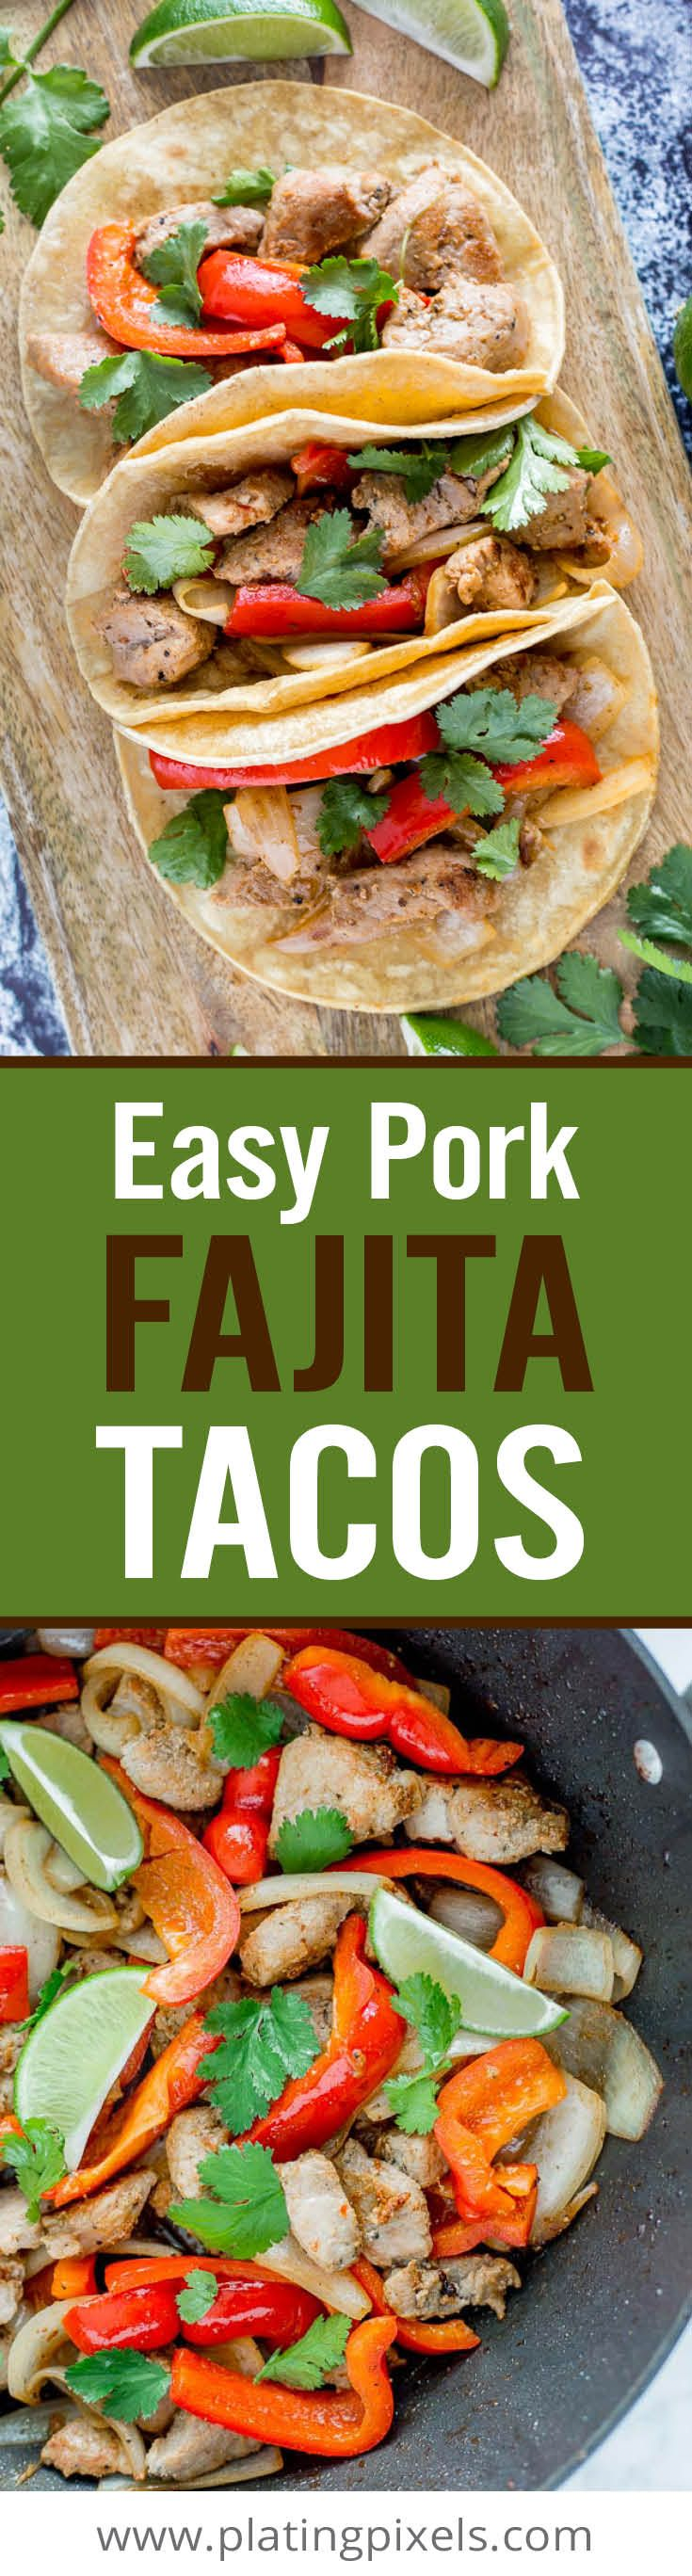 Try these homemade Easy Pork Fajita Tacos for a quick weeknight meal. Marinated pork tenderloin with garlic, onion, bell pepper, lime and cilantro in corn tortilla. - www.platingpixels.com